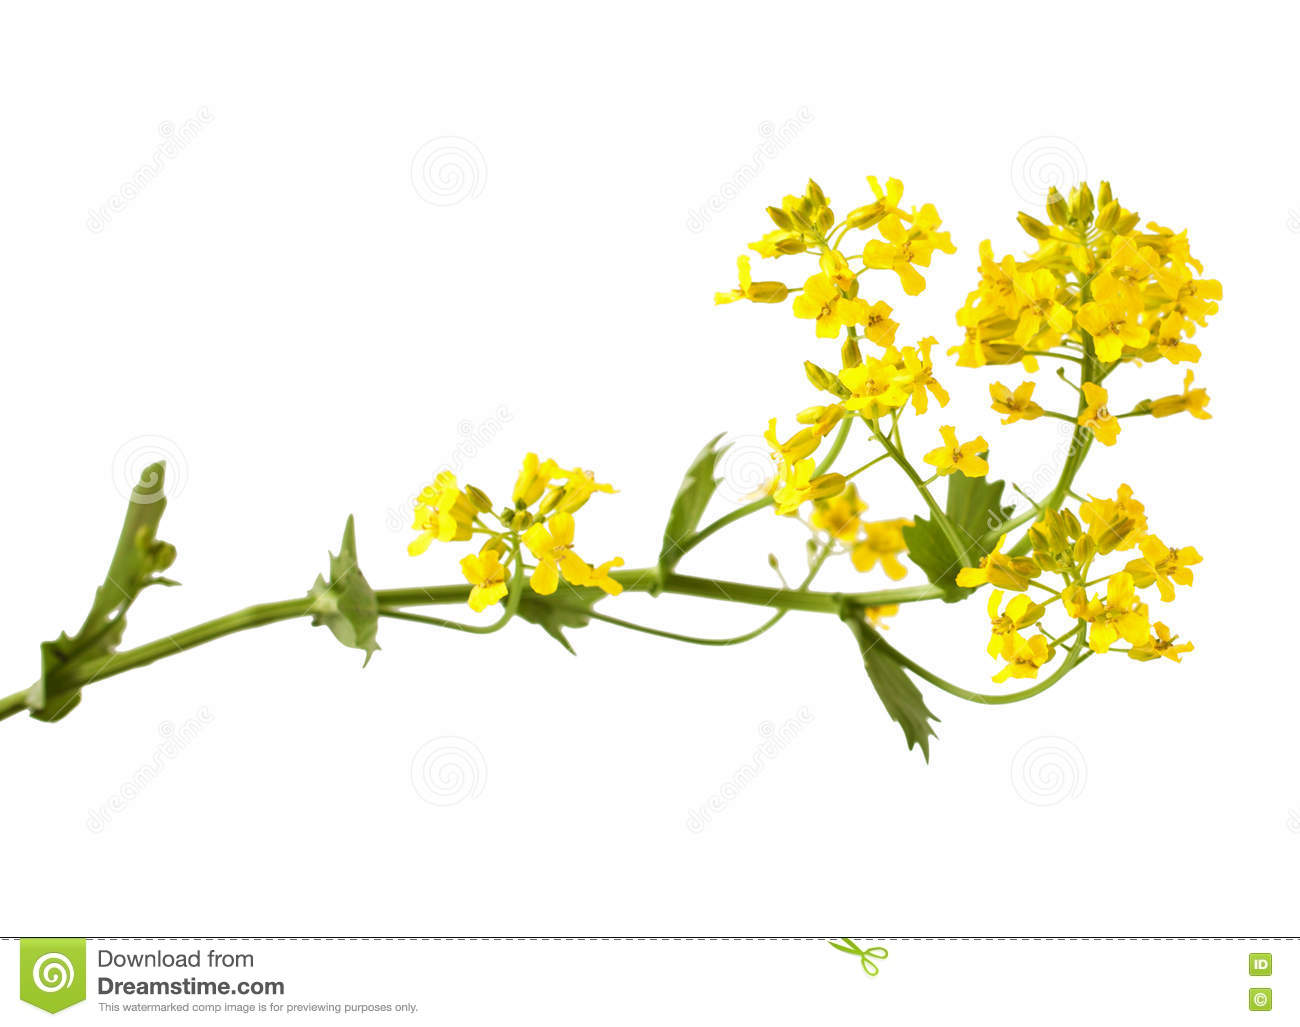 Flowering Barbarea Vulgaris Or Yellow Rocket Plant Stock Photo.